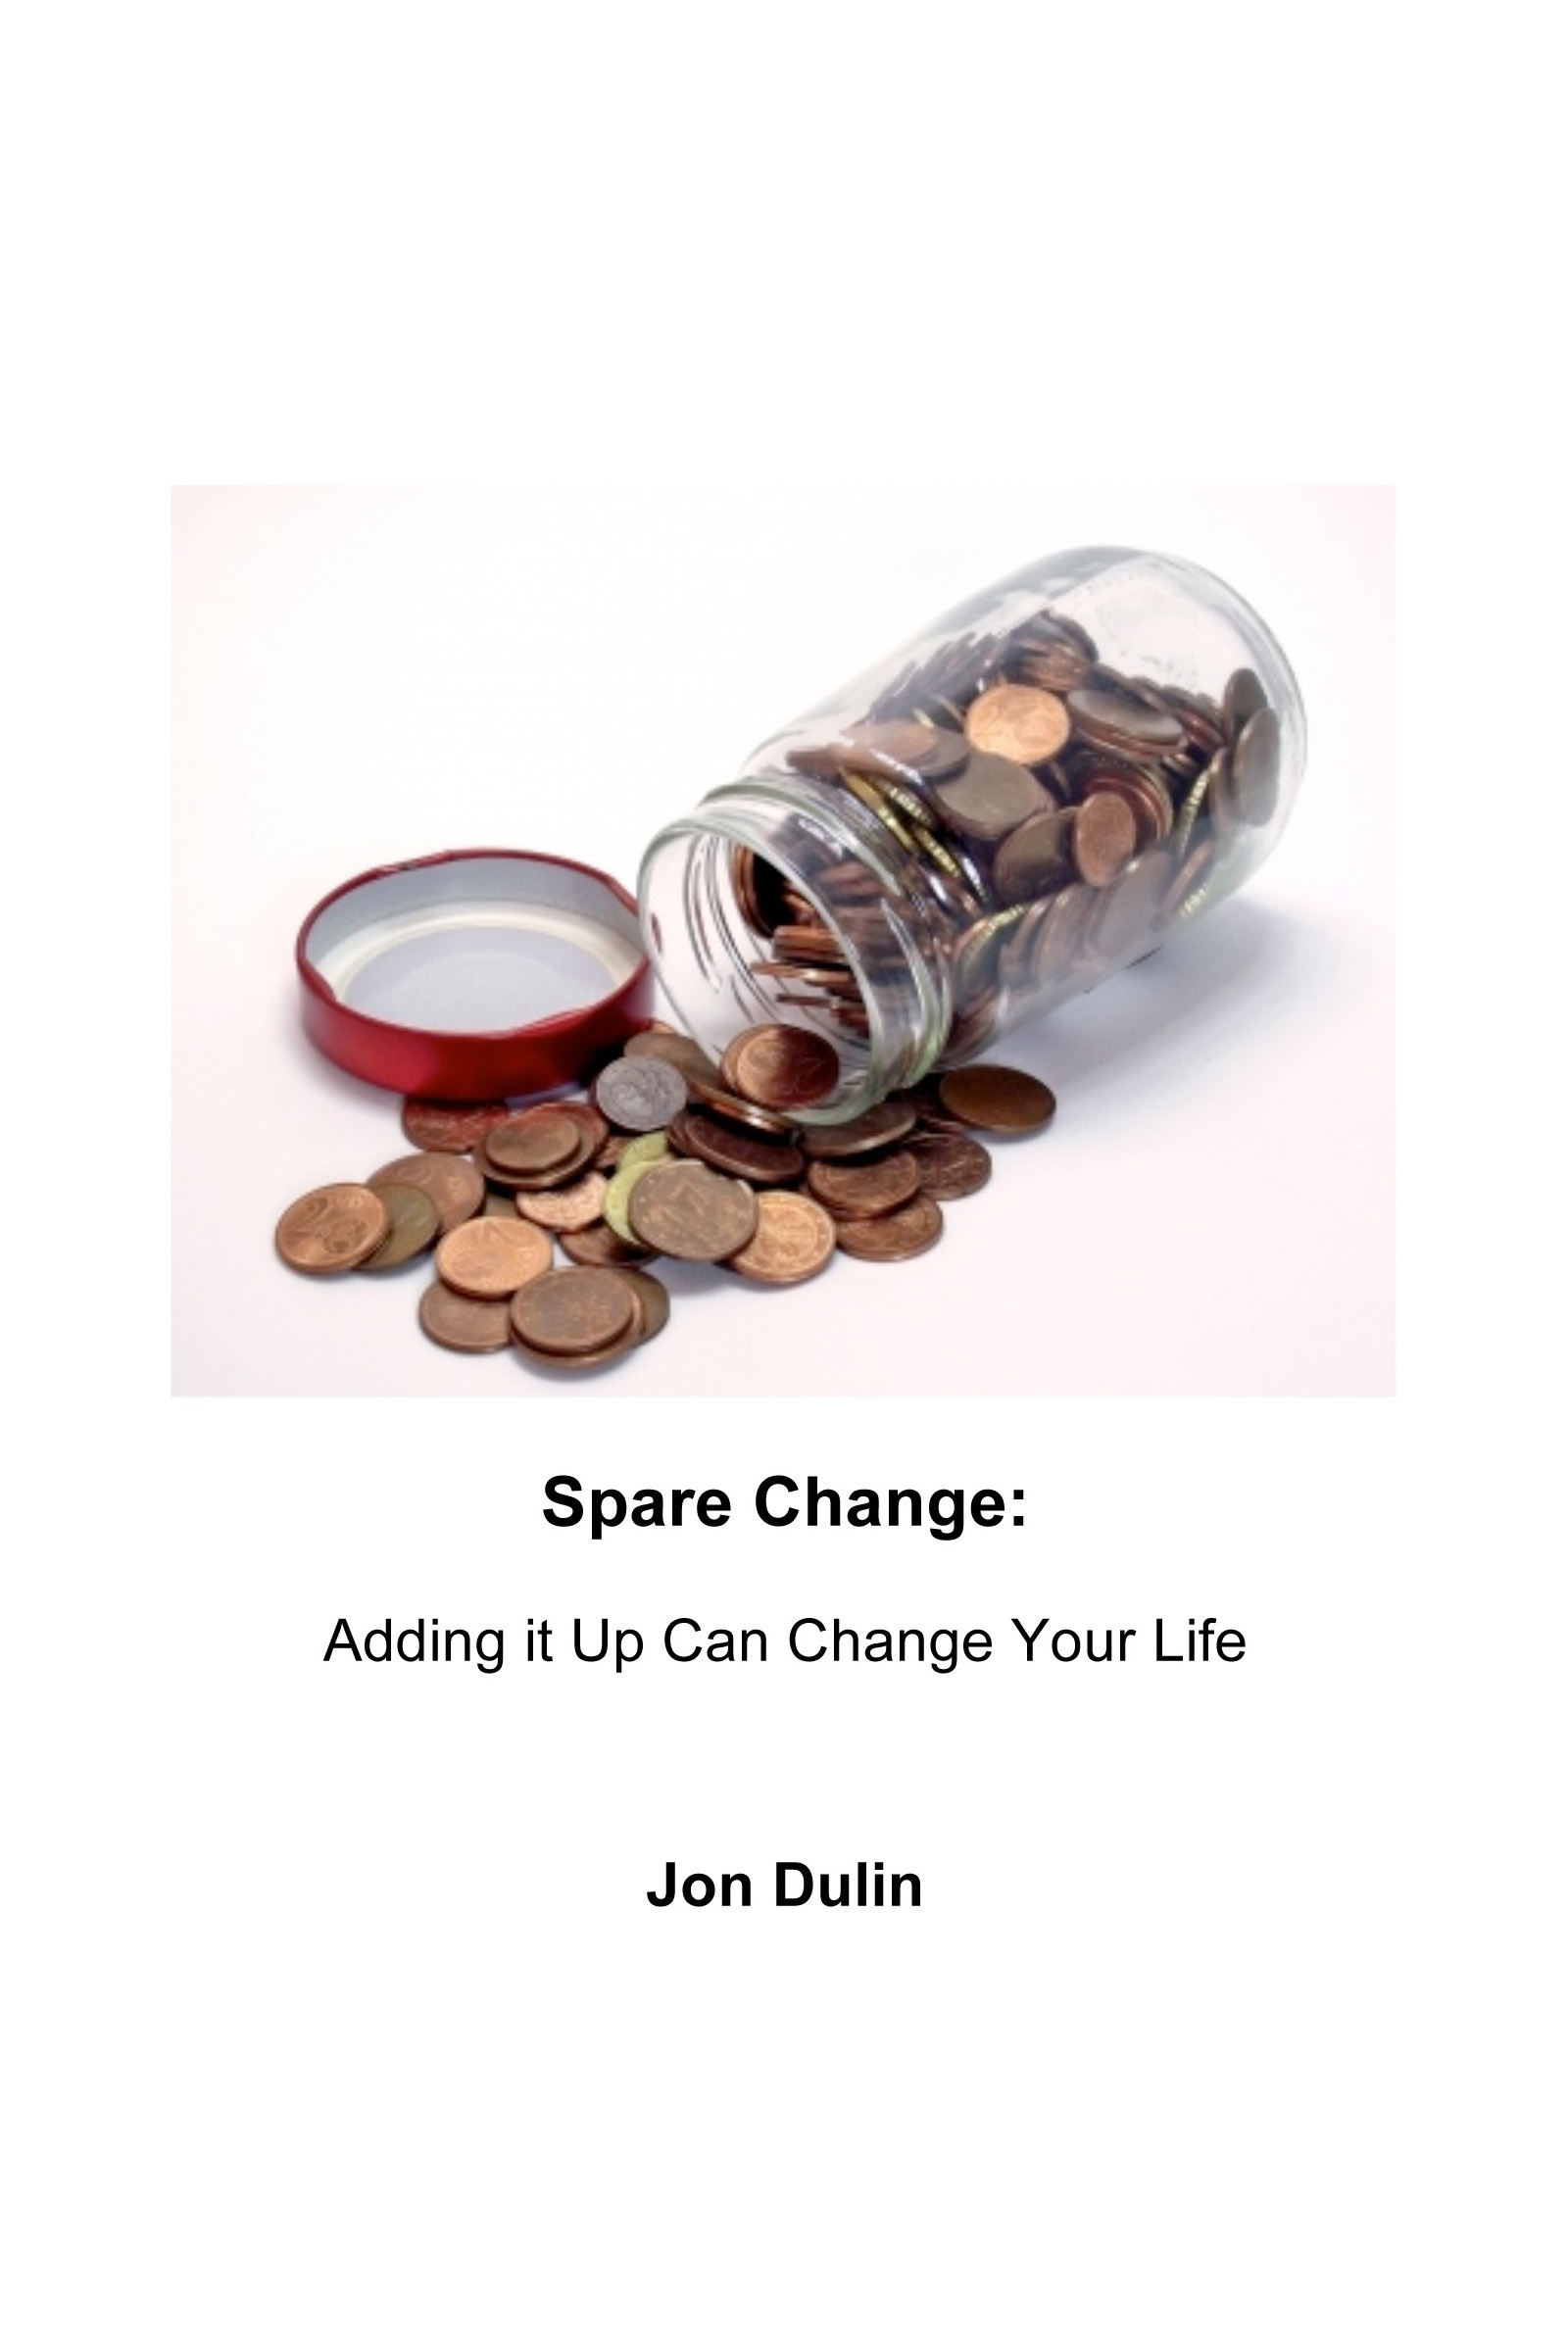 Spare Change: Adding it Up Can Change Your Life